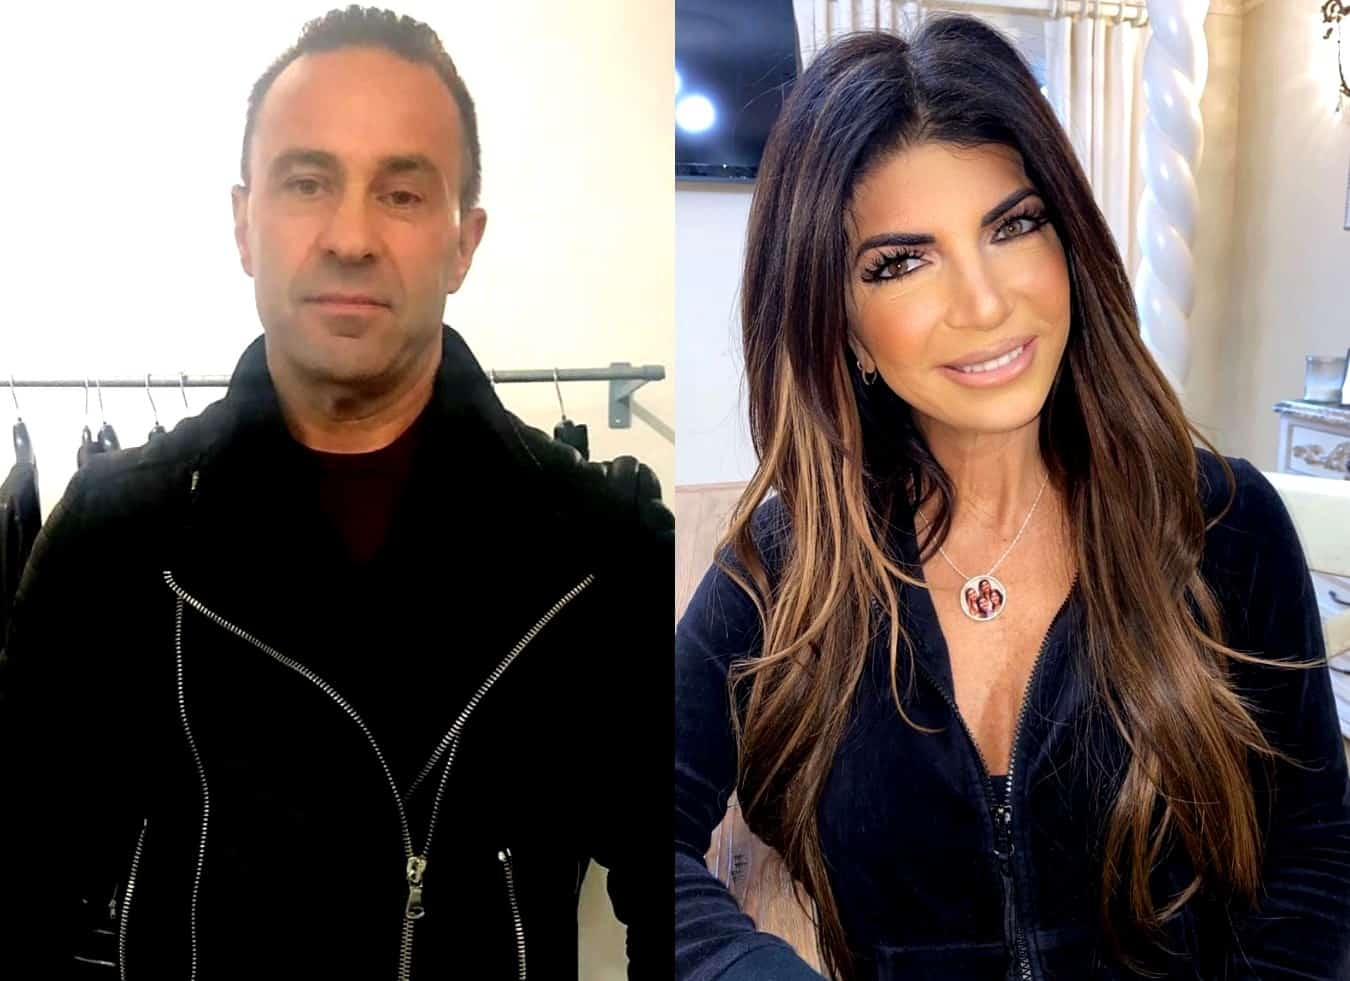 RHONJ's Joe Giudice Says Teresa 'Was' His Wife While Applauding Her